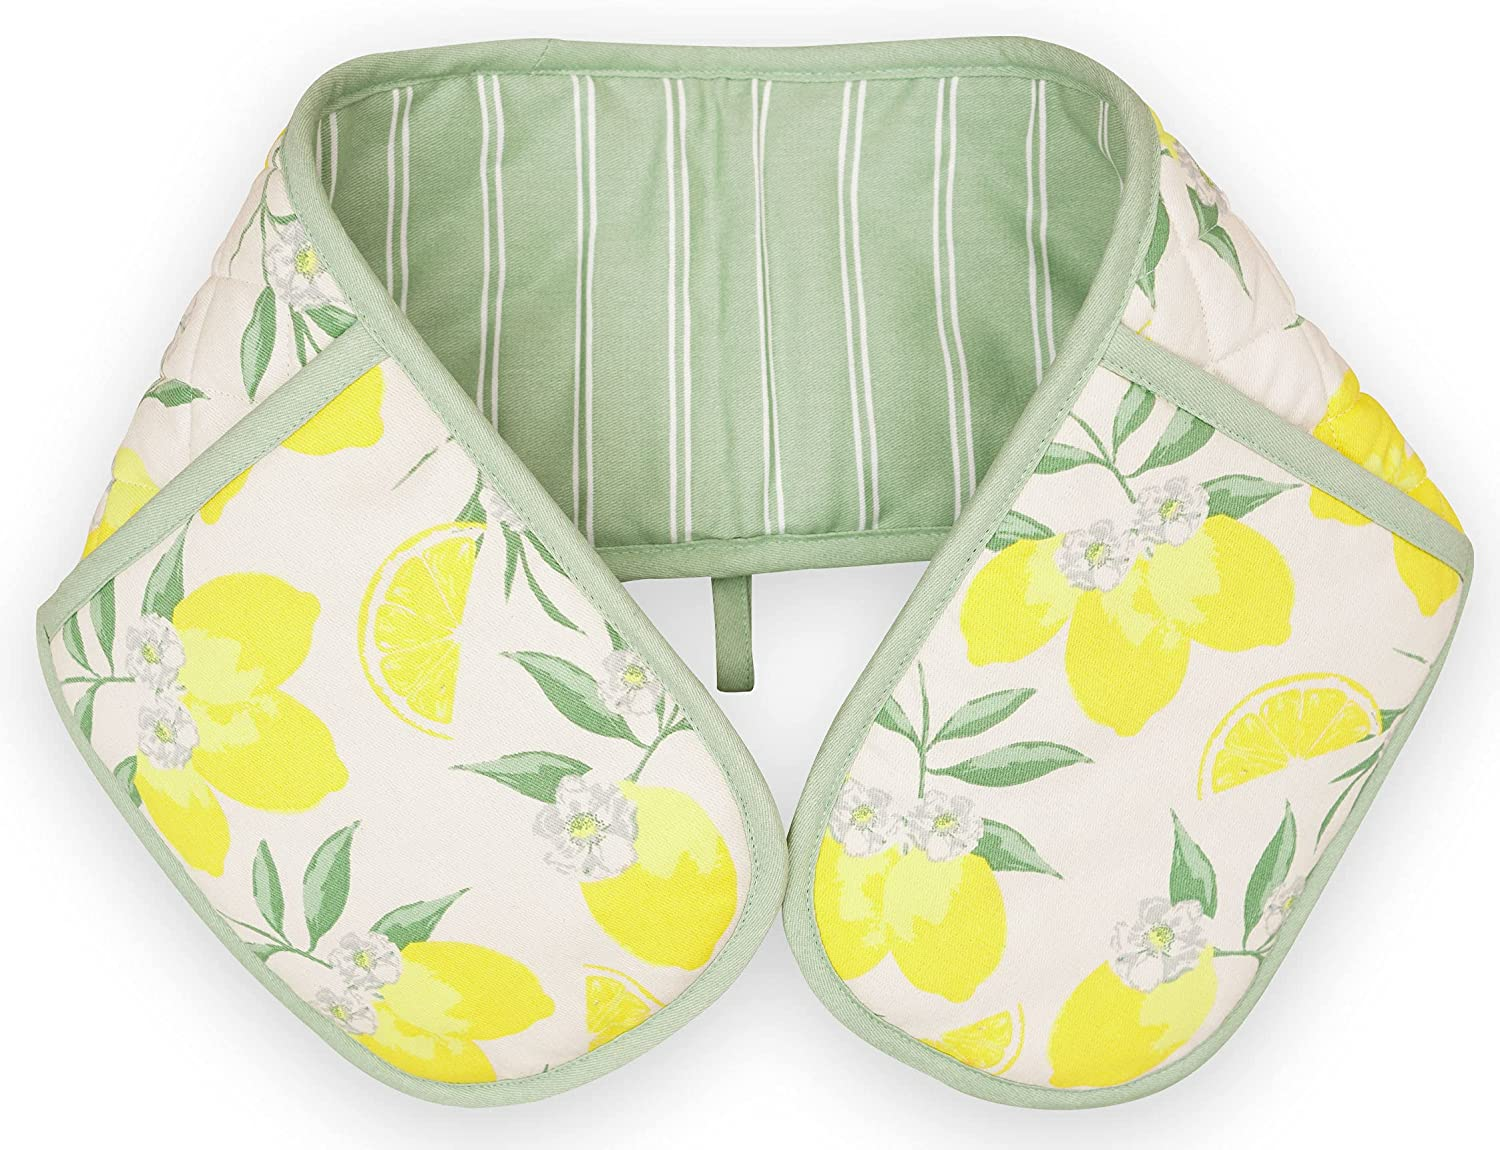 DAILY HOME ESSENTIALS - Premium Cotton (Double Oven Mitt 1 Pack, Yellow) 7x36 Inches, Suits for Holding, Lifting and Placing Pans, Utensil & Supports Kitchen Cooking, Baking, BBQ.